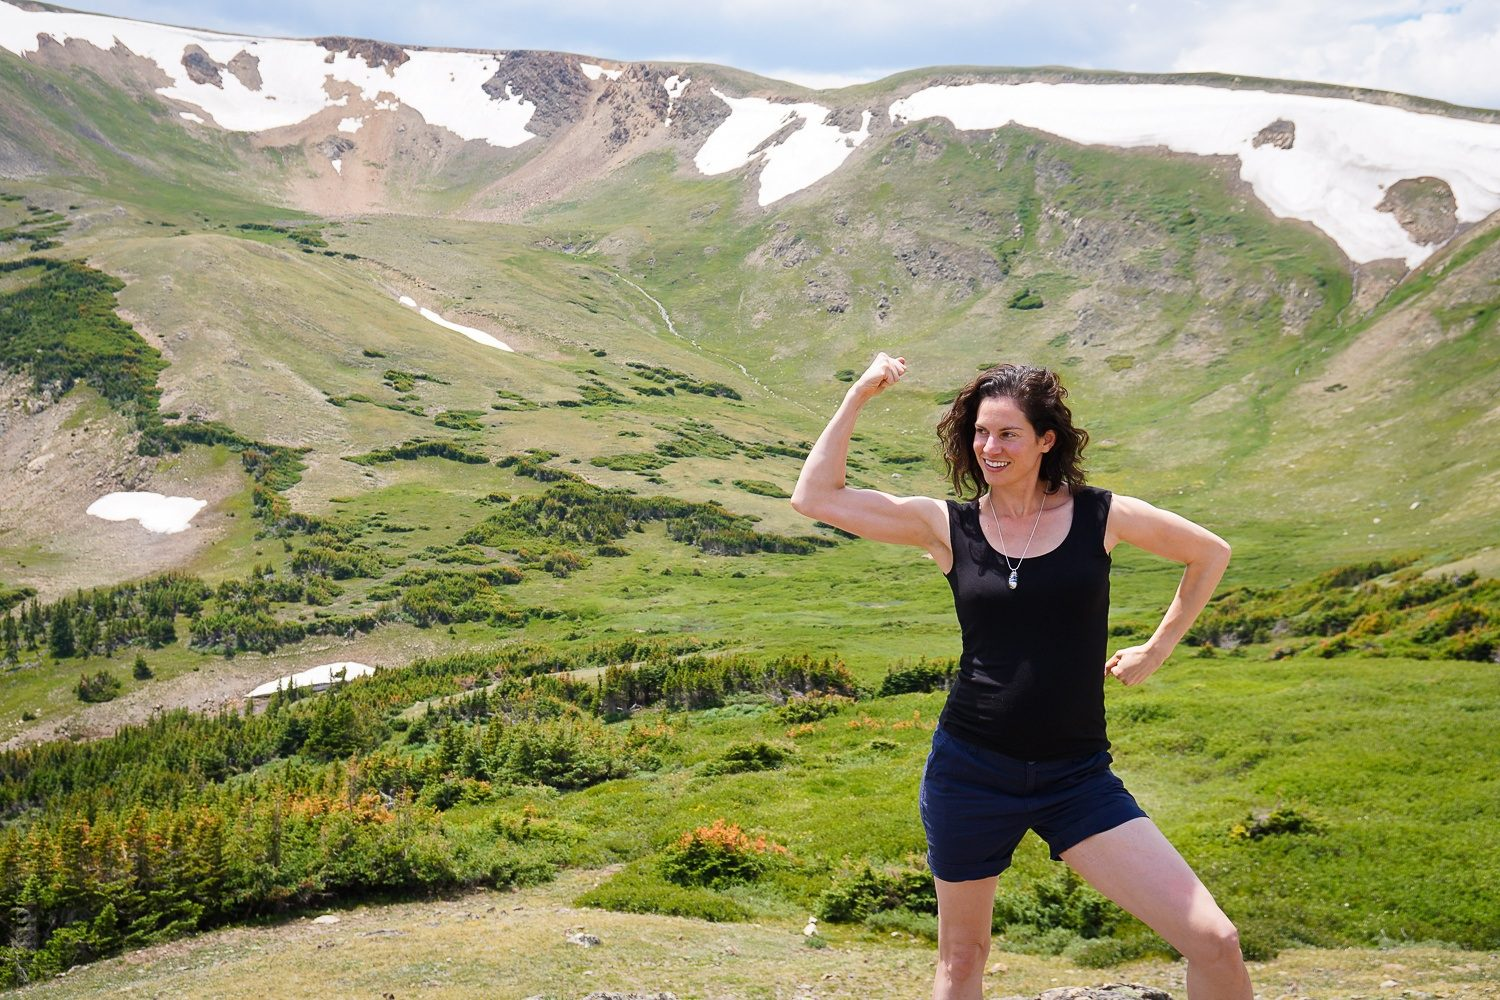 Flexing bicep muscles in Colorado Mountains: RMNP